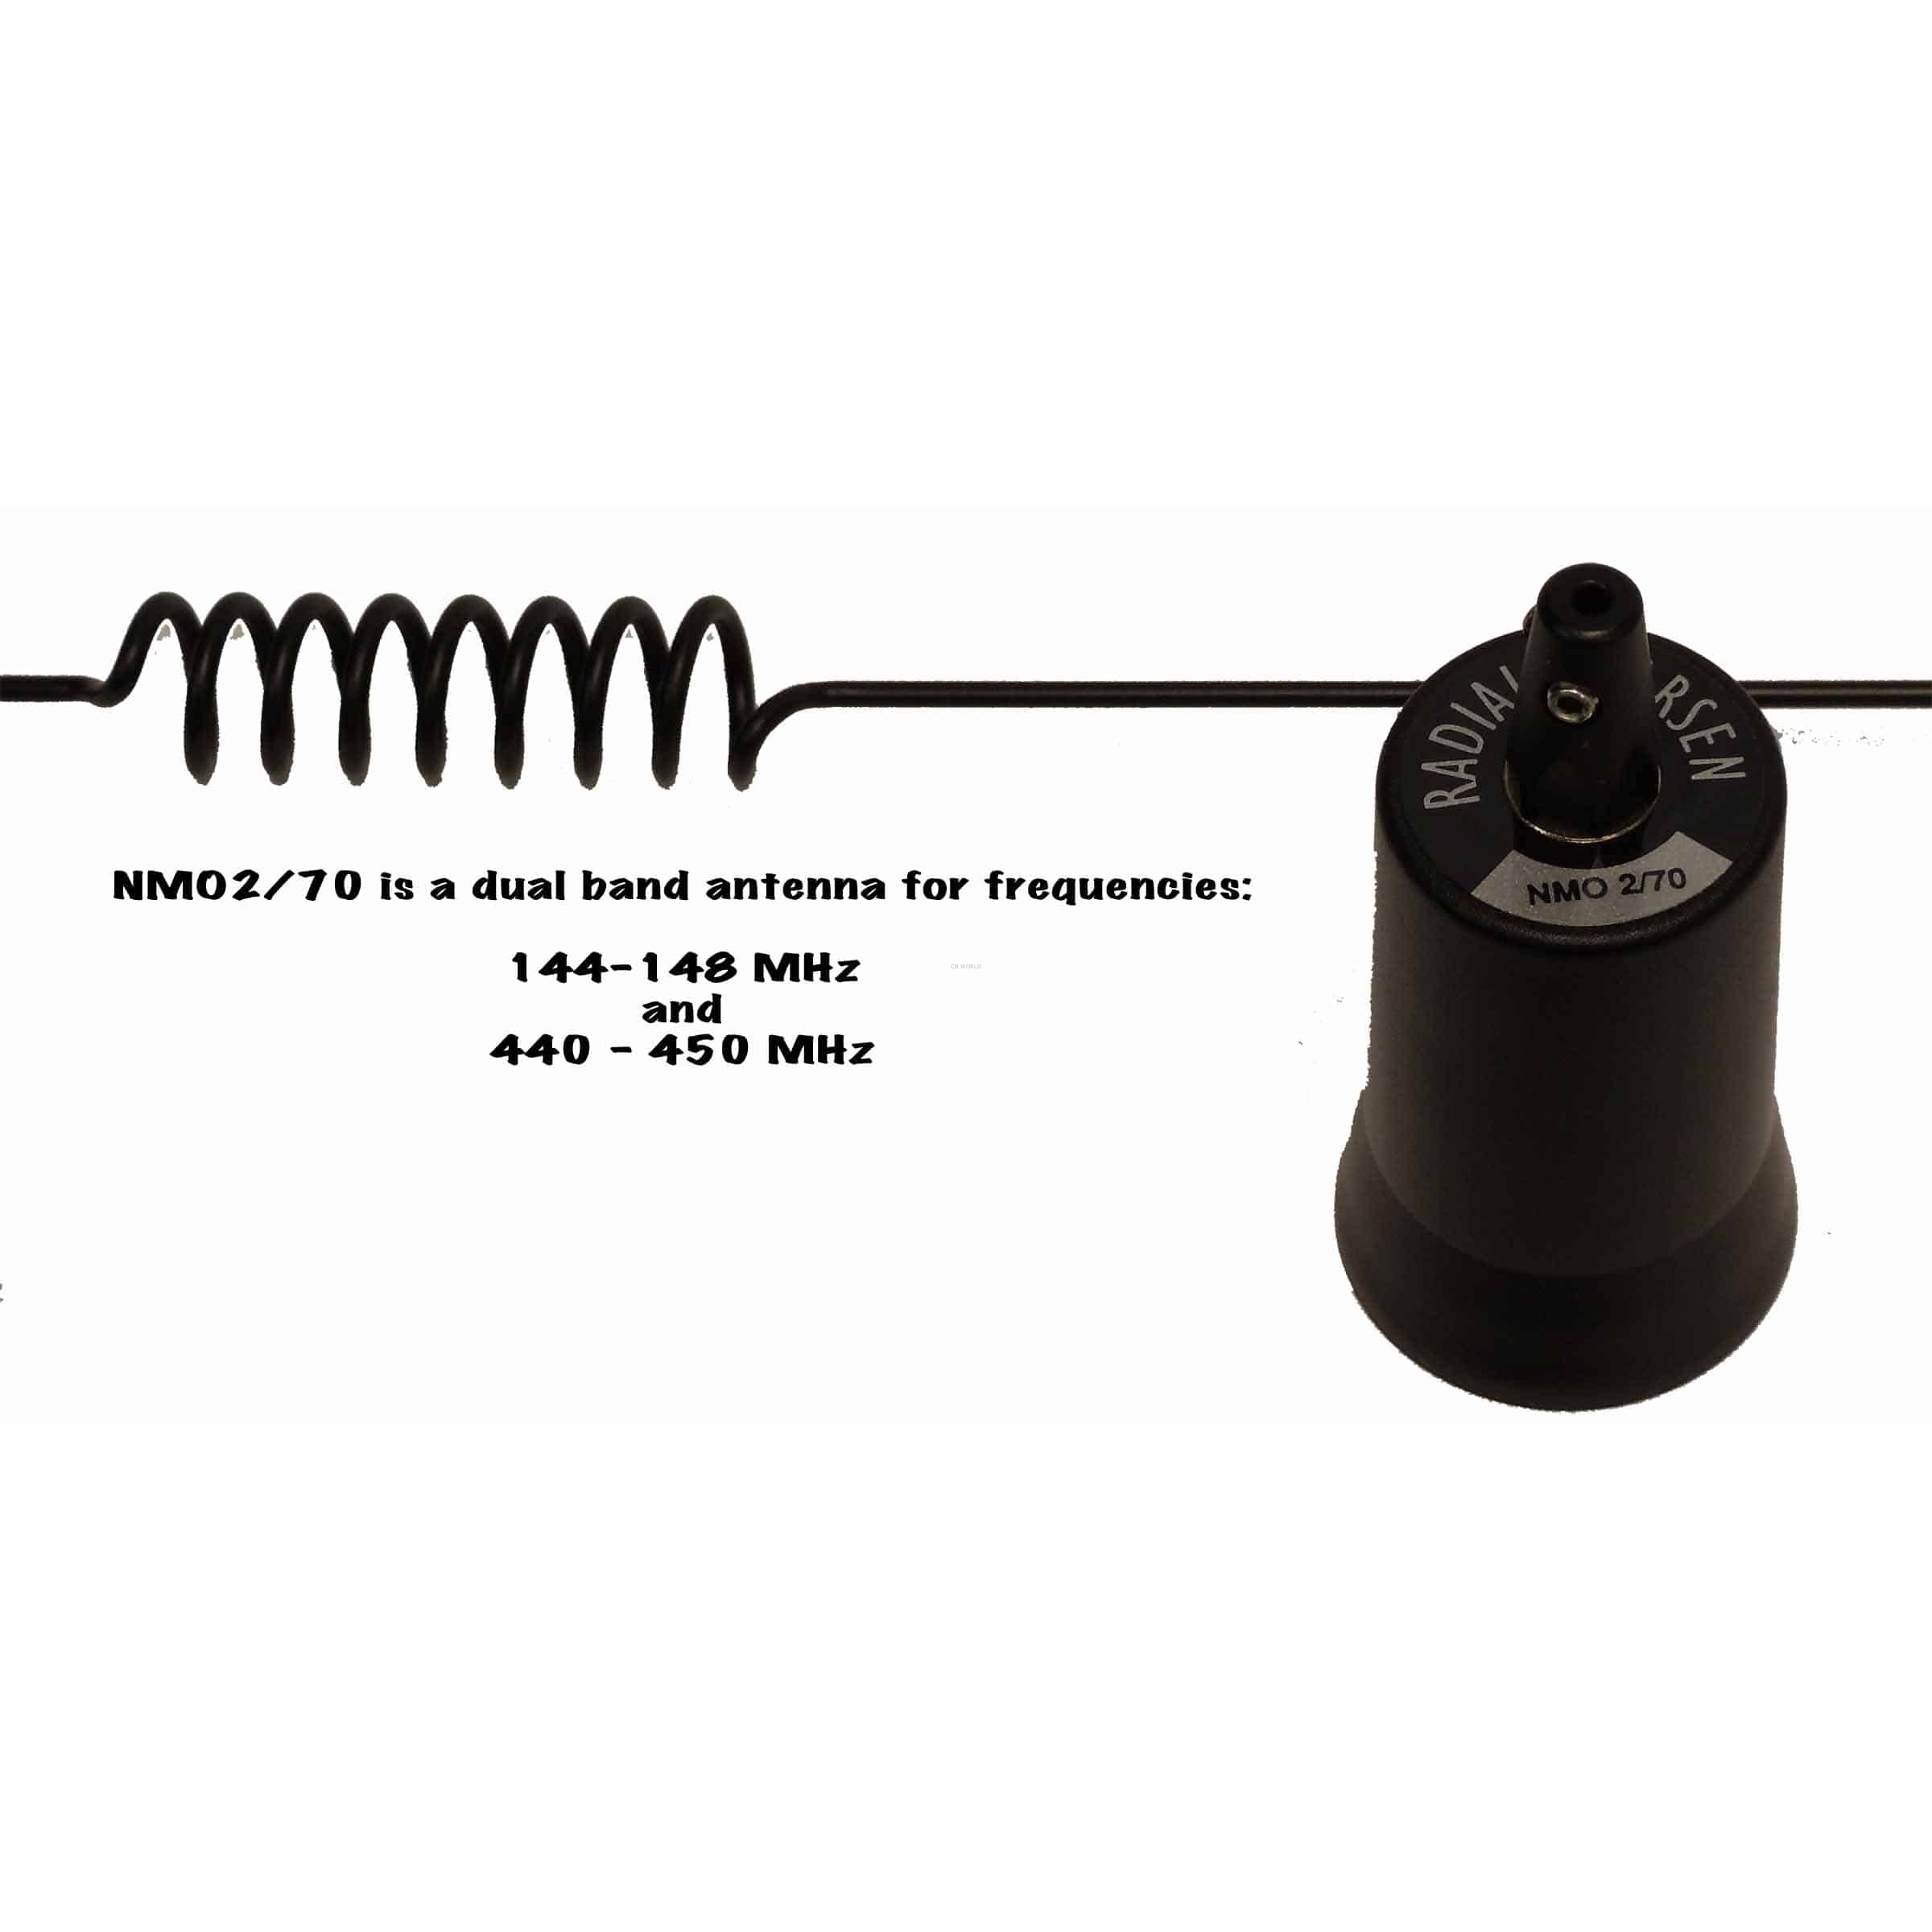 Nmo270b Larsen Black Coil Whip Antenna 144 148mhz 440 450mhz Operating At Medium Wave Frequency